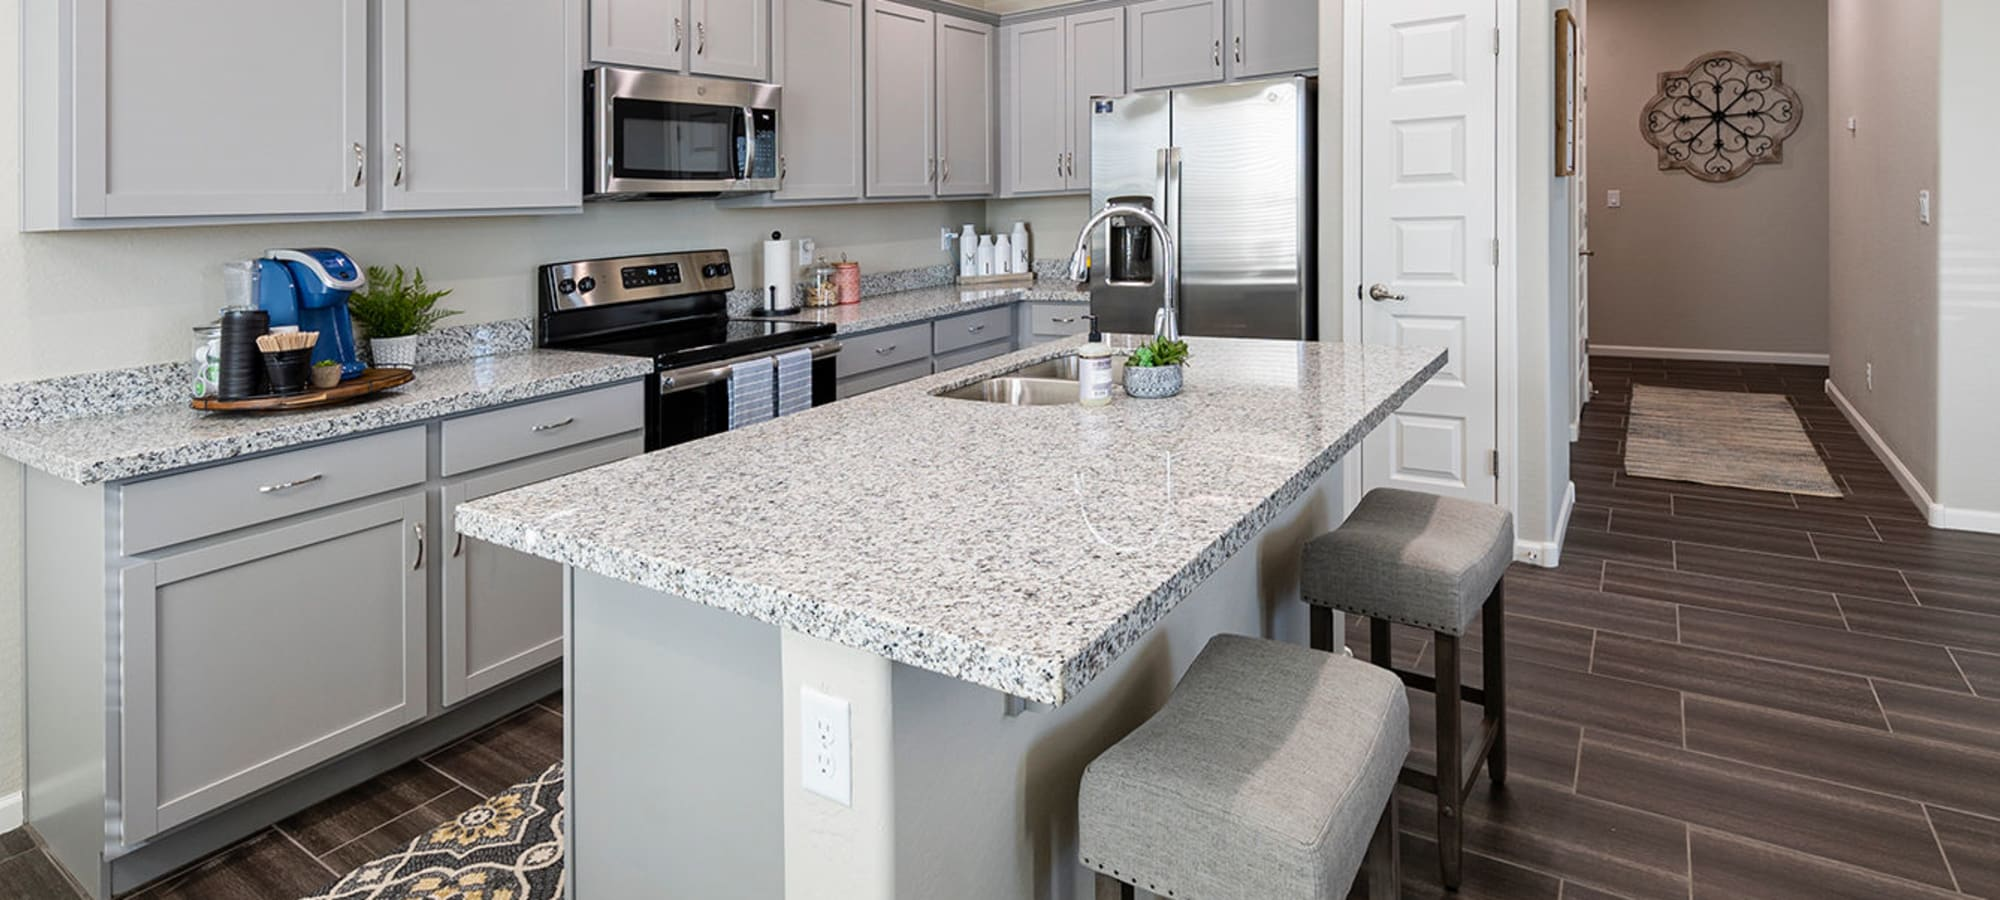 Spacious kitchen with stainless-steel appliances at BB Living at Eastmark in Mesa, Arizona